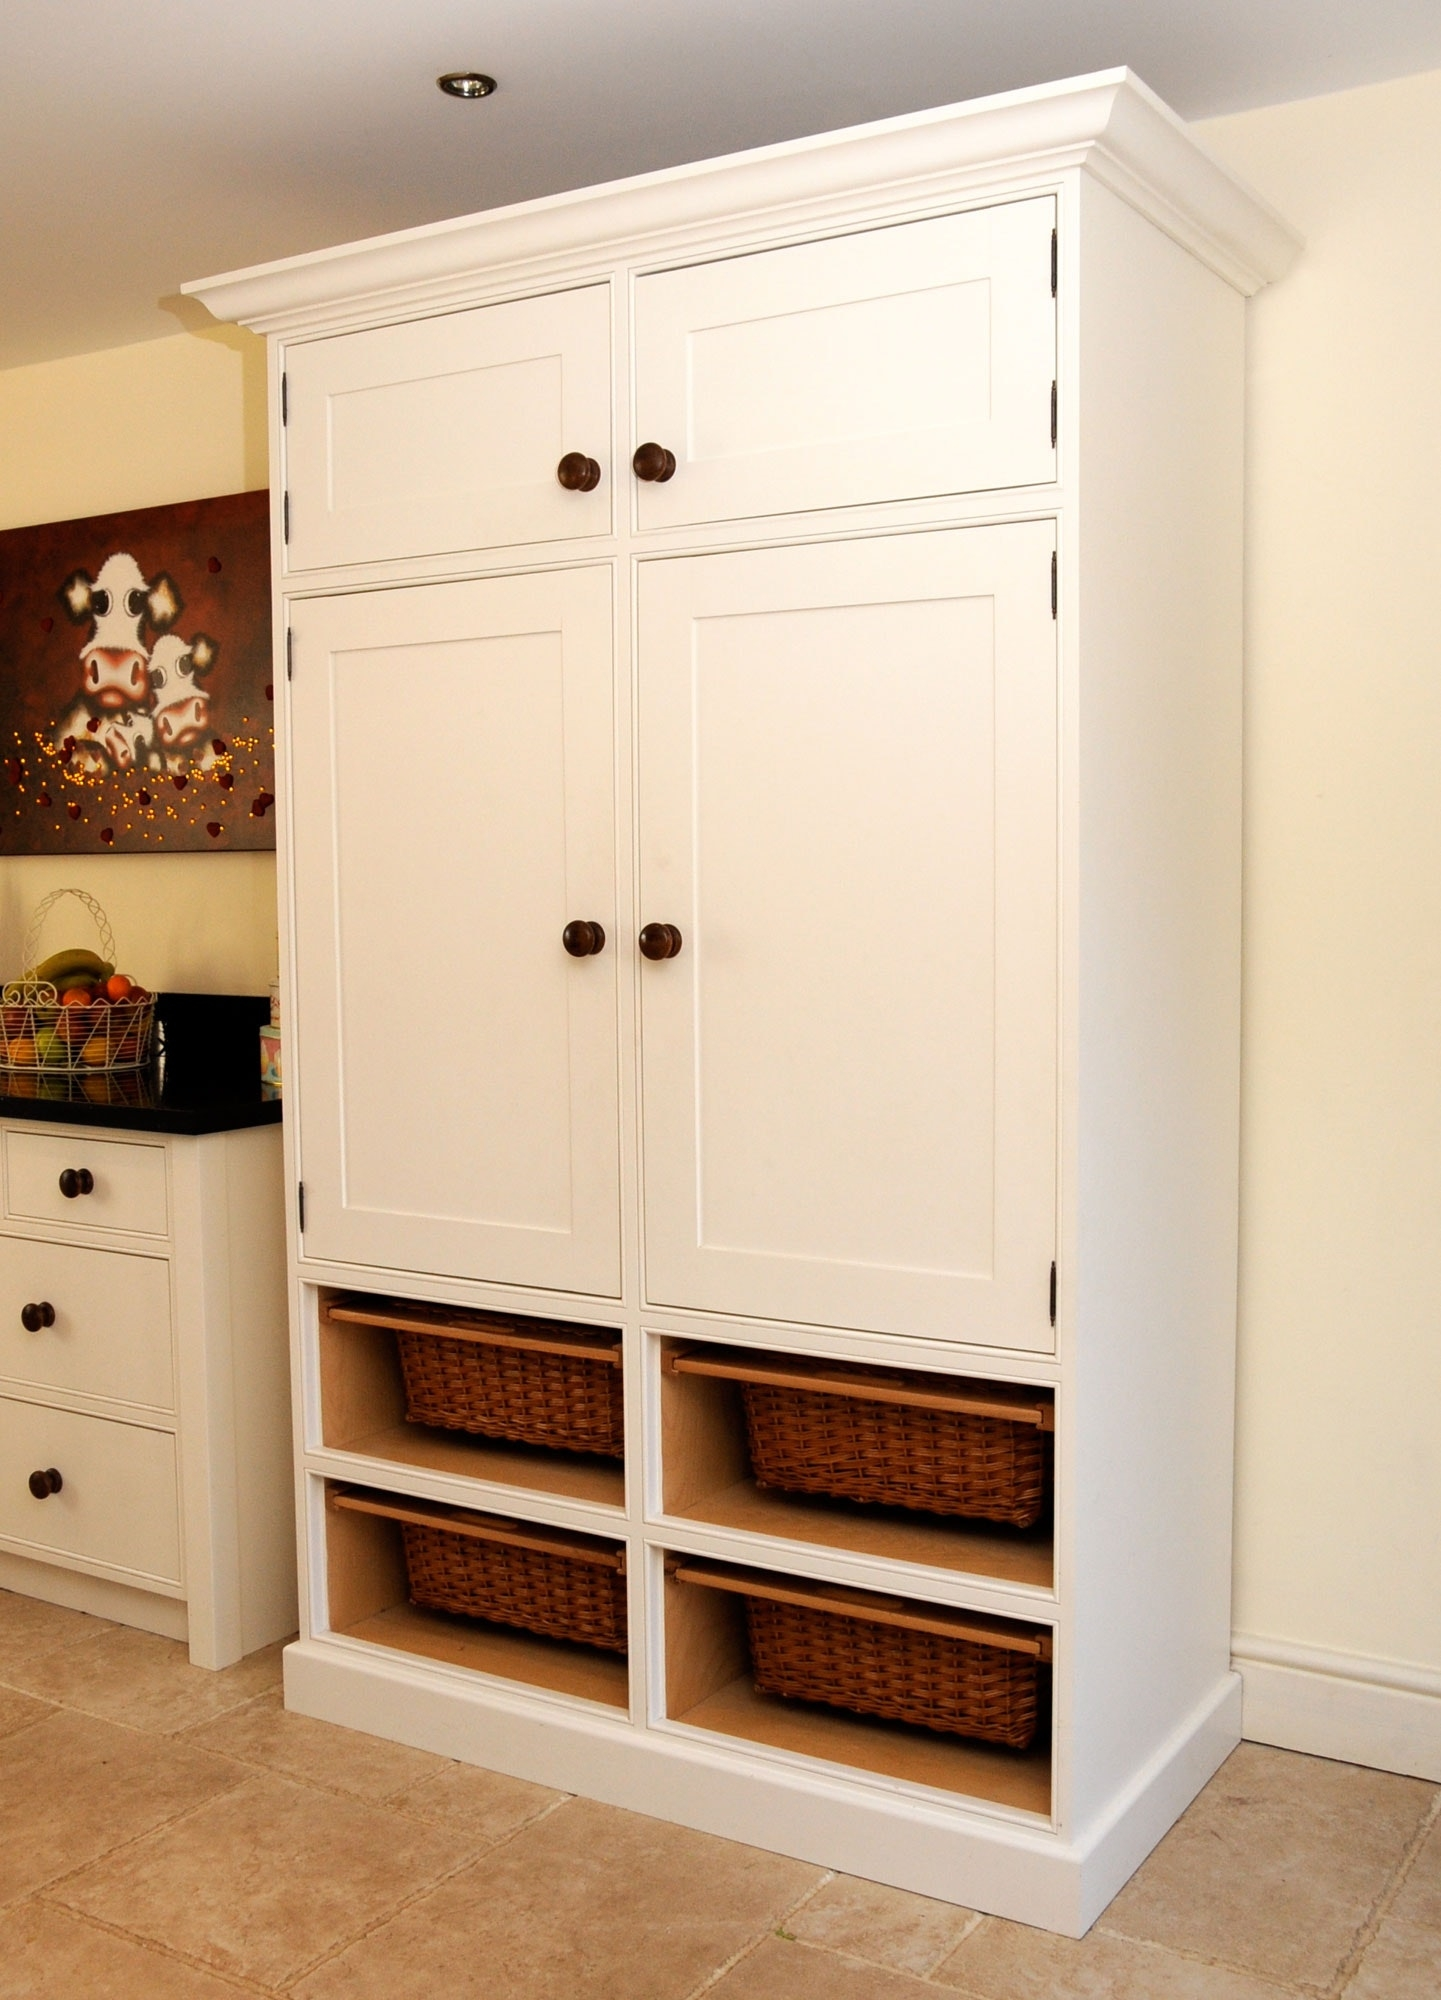 Tall Storage Cabinet With Baskets